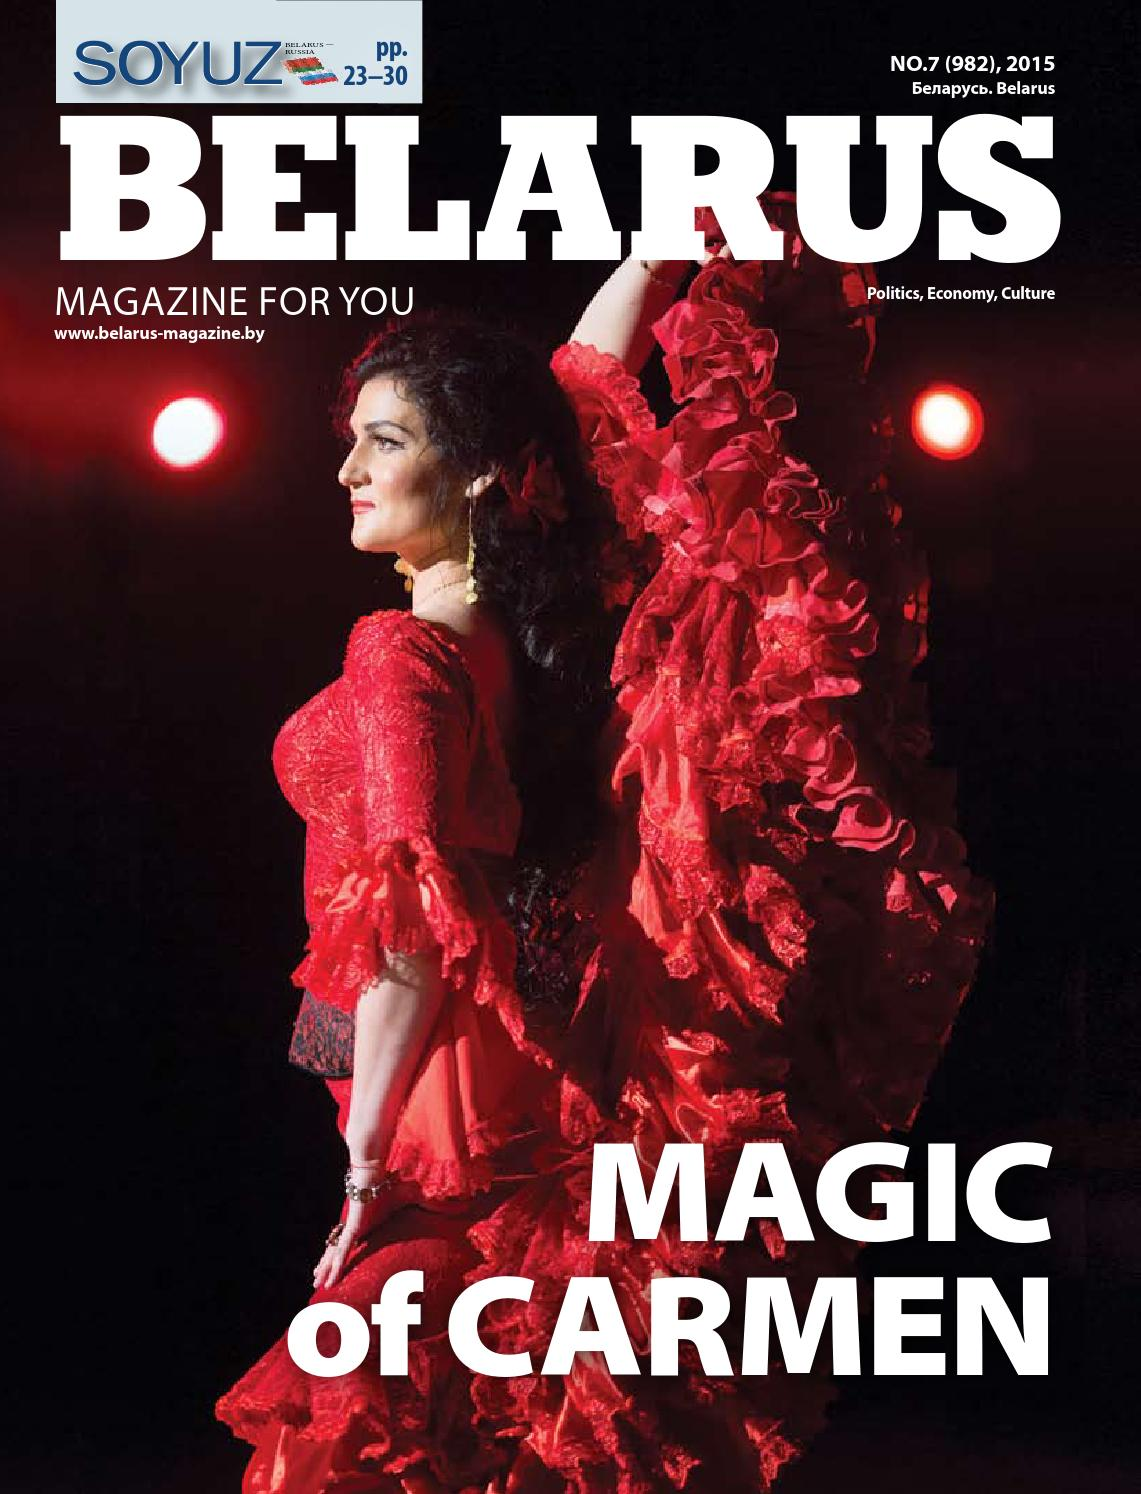 cb570be65 Belarus (magazine #7 2015) by BELARUS Magazine - issuu